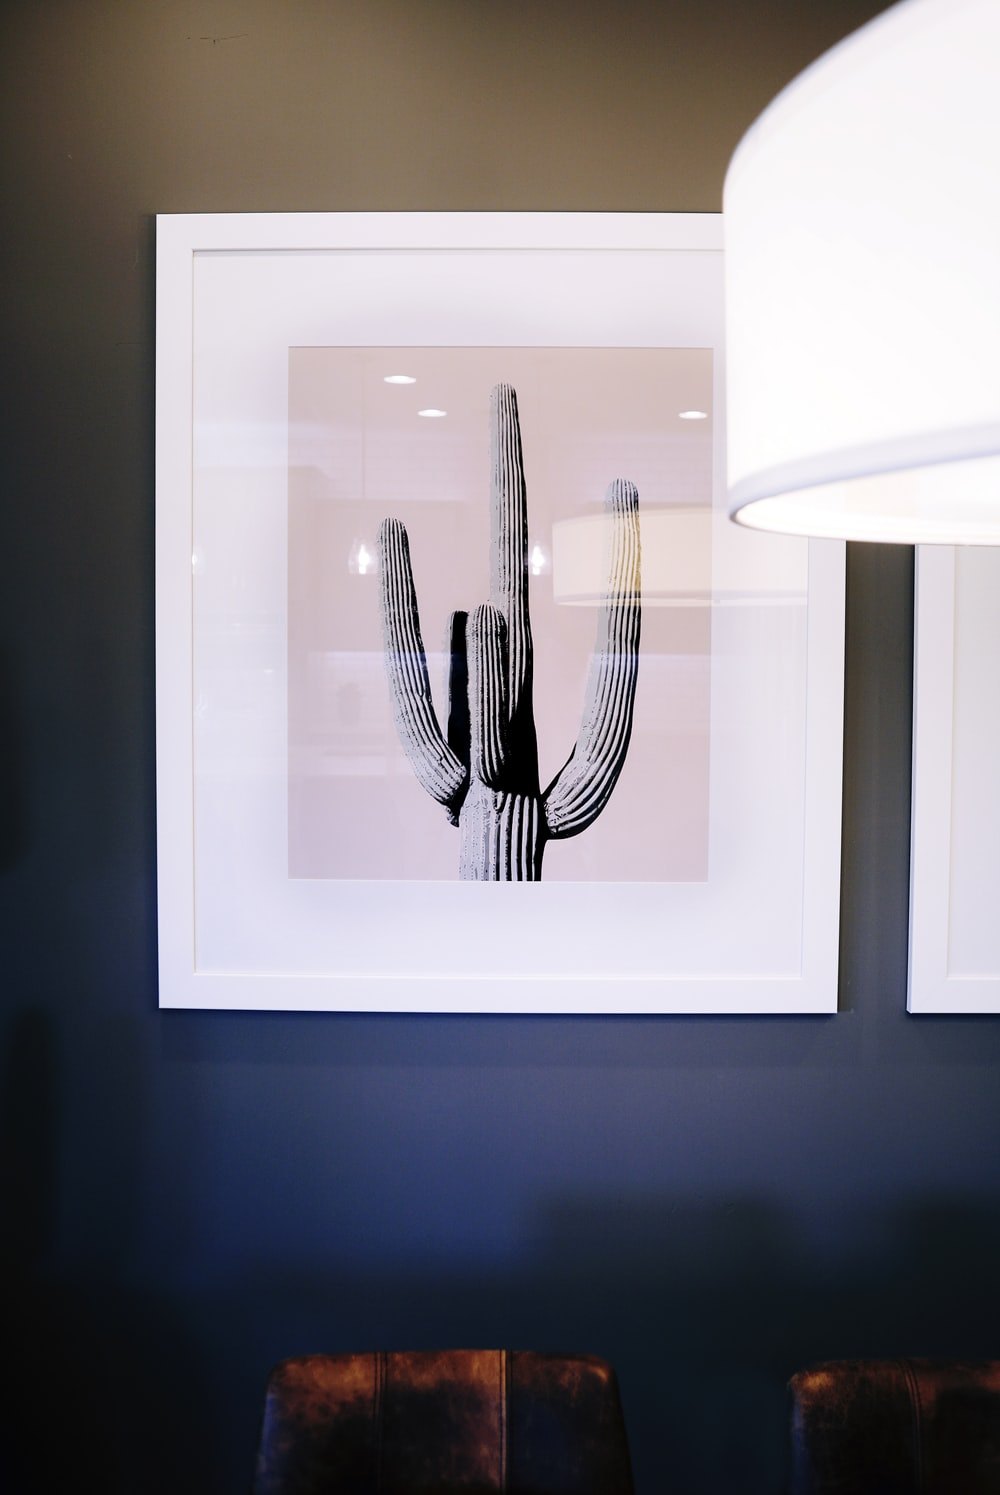 painting of cactus plant